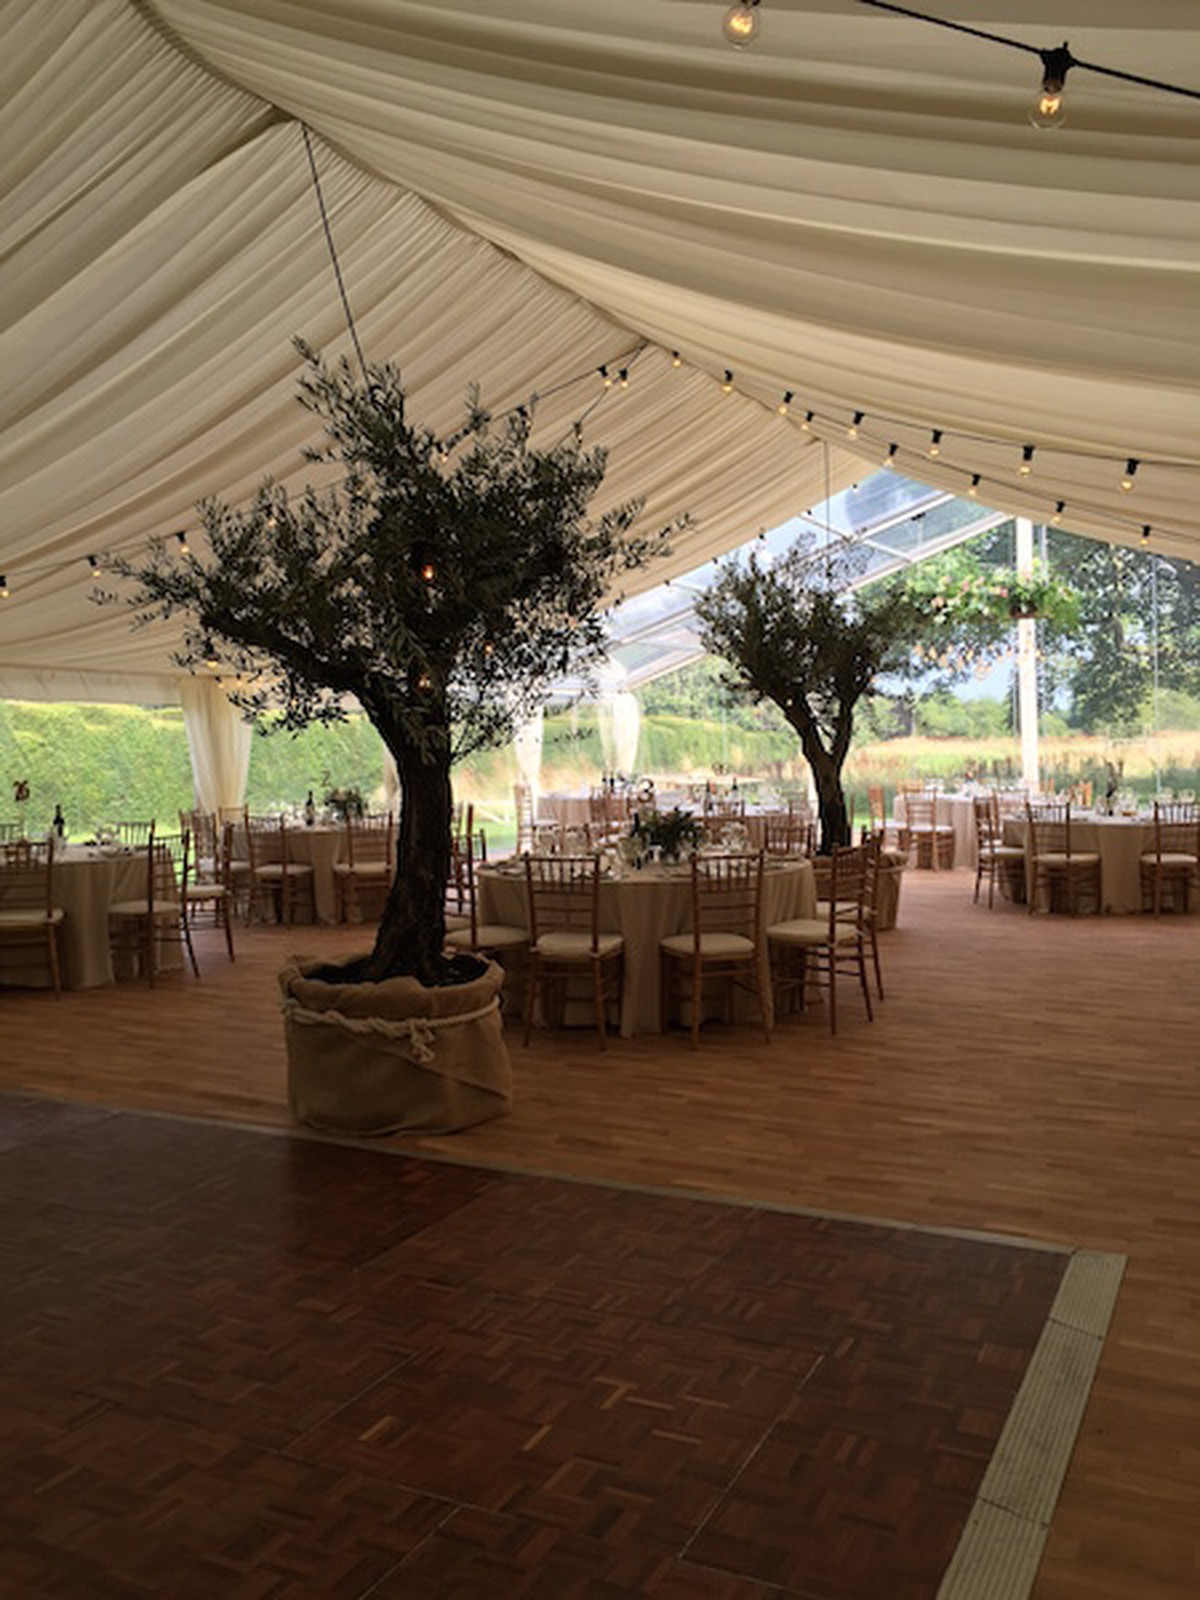 wedding chair covers newcastle upon tyne side chairs with casters curlew secondhand marquees dance floor parquet